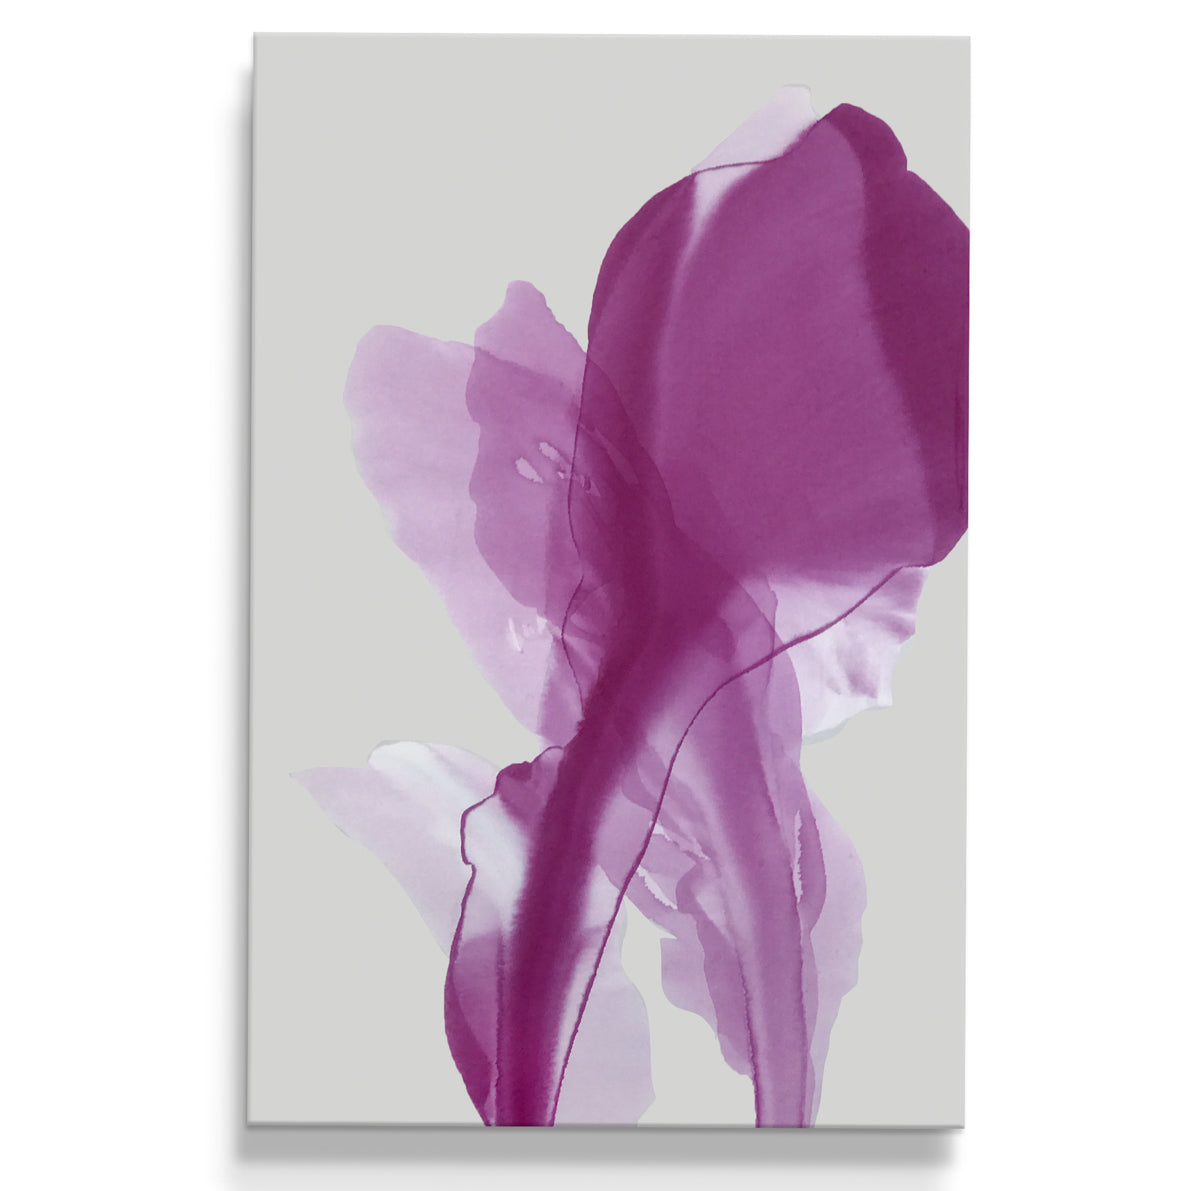 abstract art floral Marta Spendowska bloomlands original fine art Abstract Painting: Smitten by flower' blushing / 36x24""